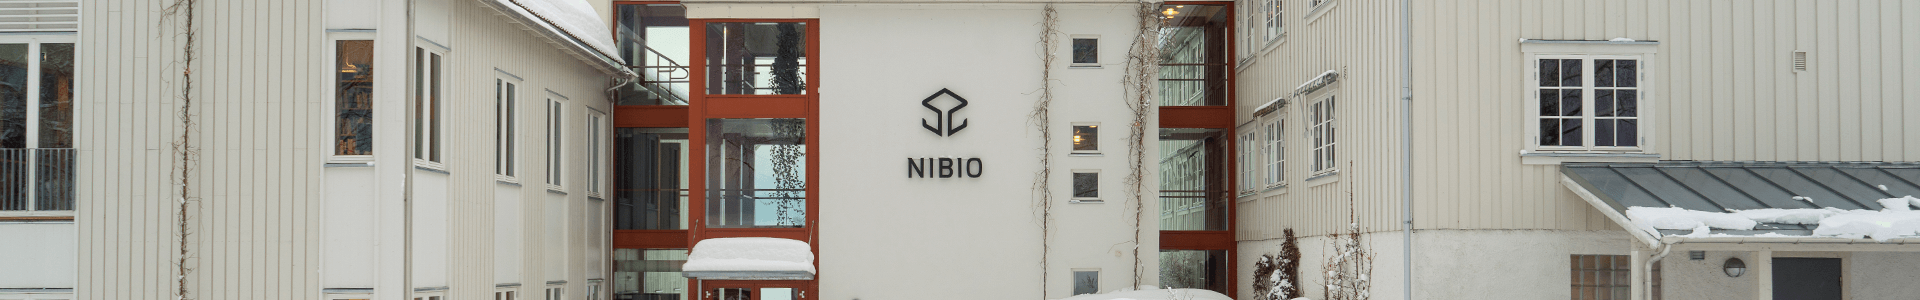 The picture of Contact shows the NIBIO Apelsvoll building